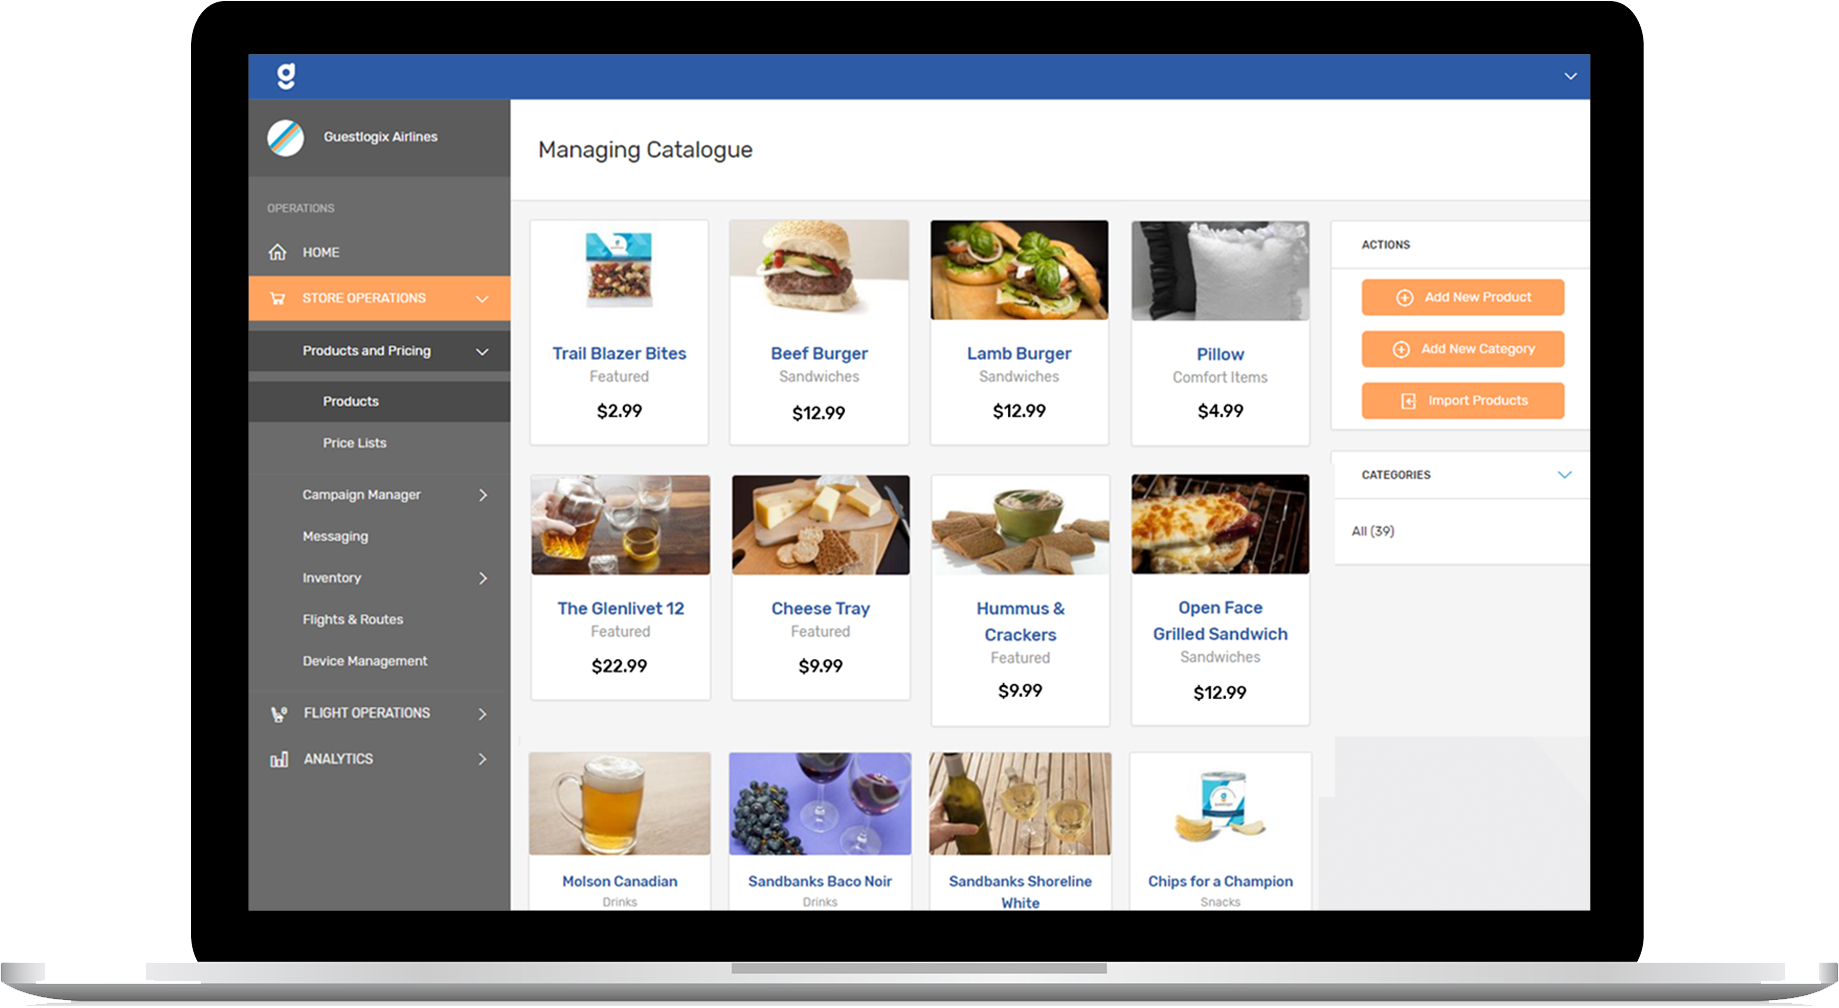 Manage operations and build  campaigns all in one platform